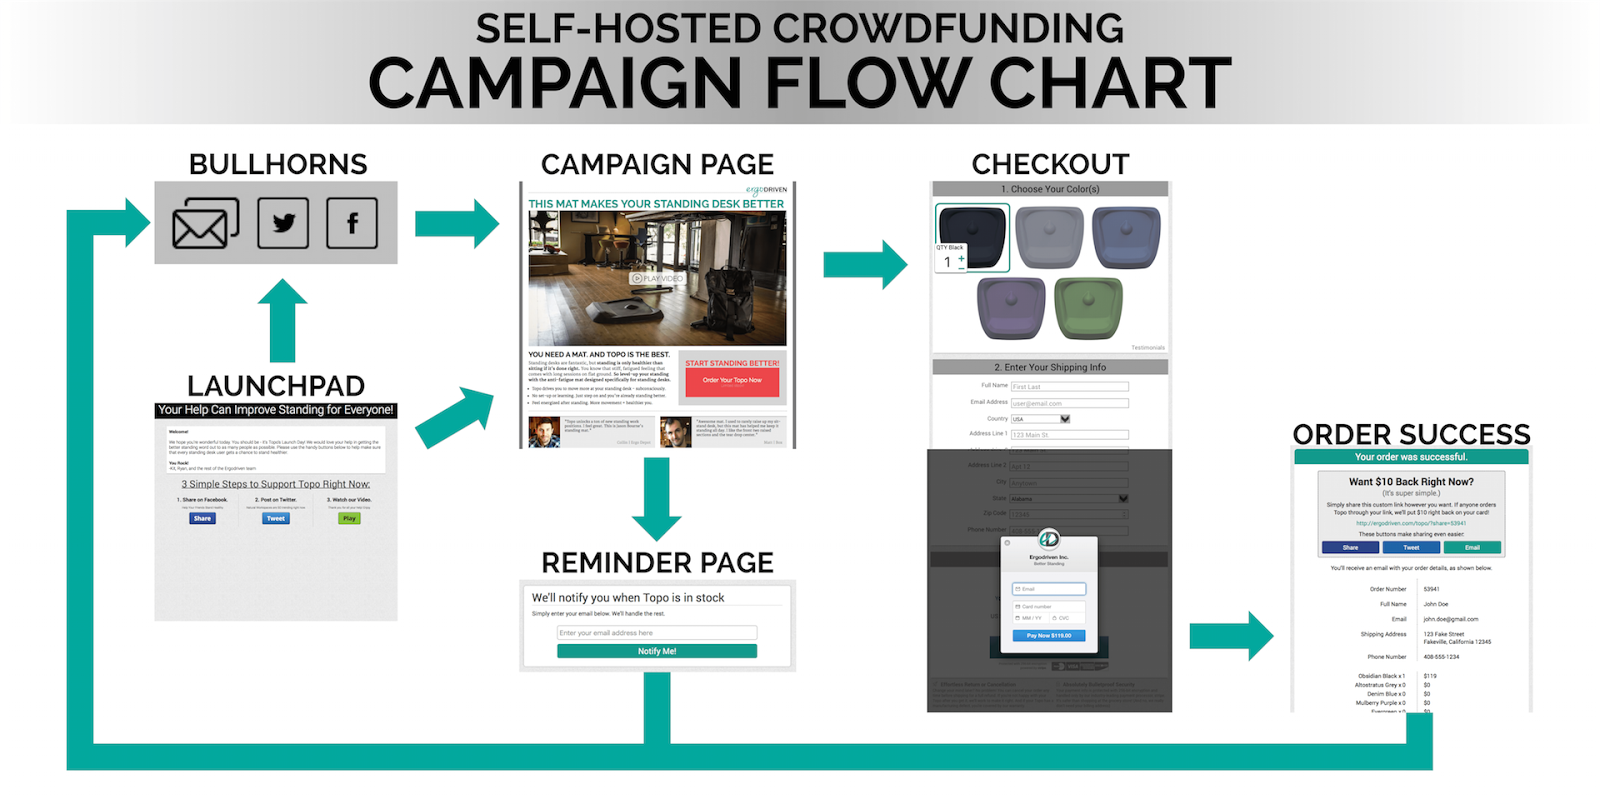 A flow chart showing what a self-hosted crowdfunding campaign should be like